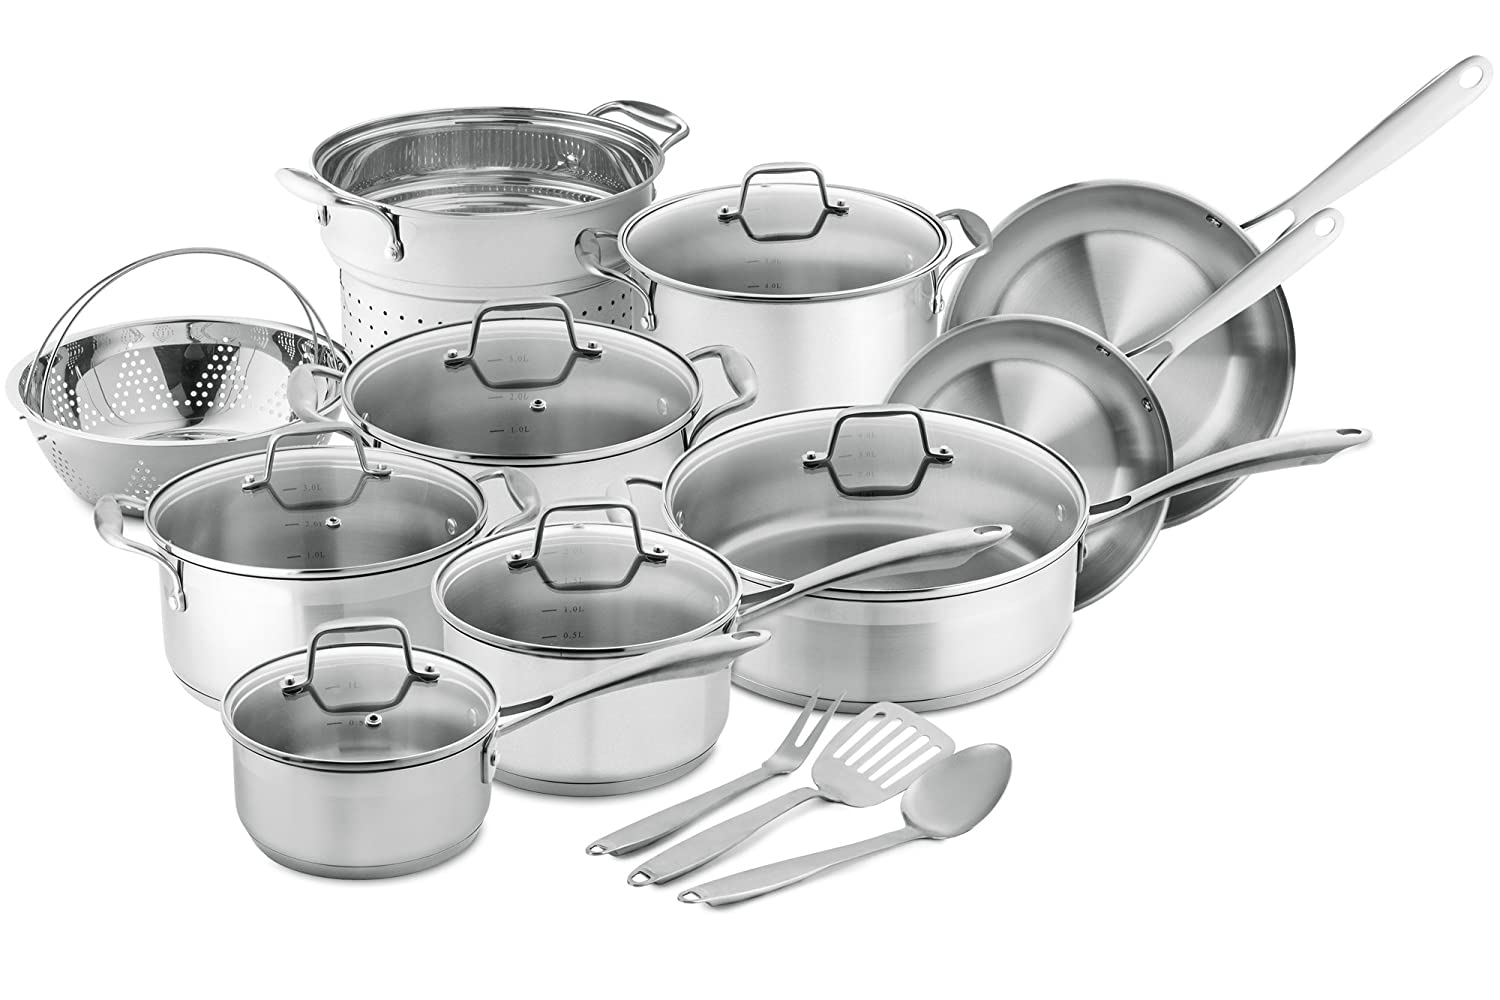 Amazon.com: Chef\'s Star 17-Piece Pots & Pans Stainless Steel - 17 ...